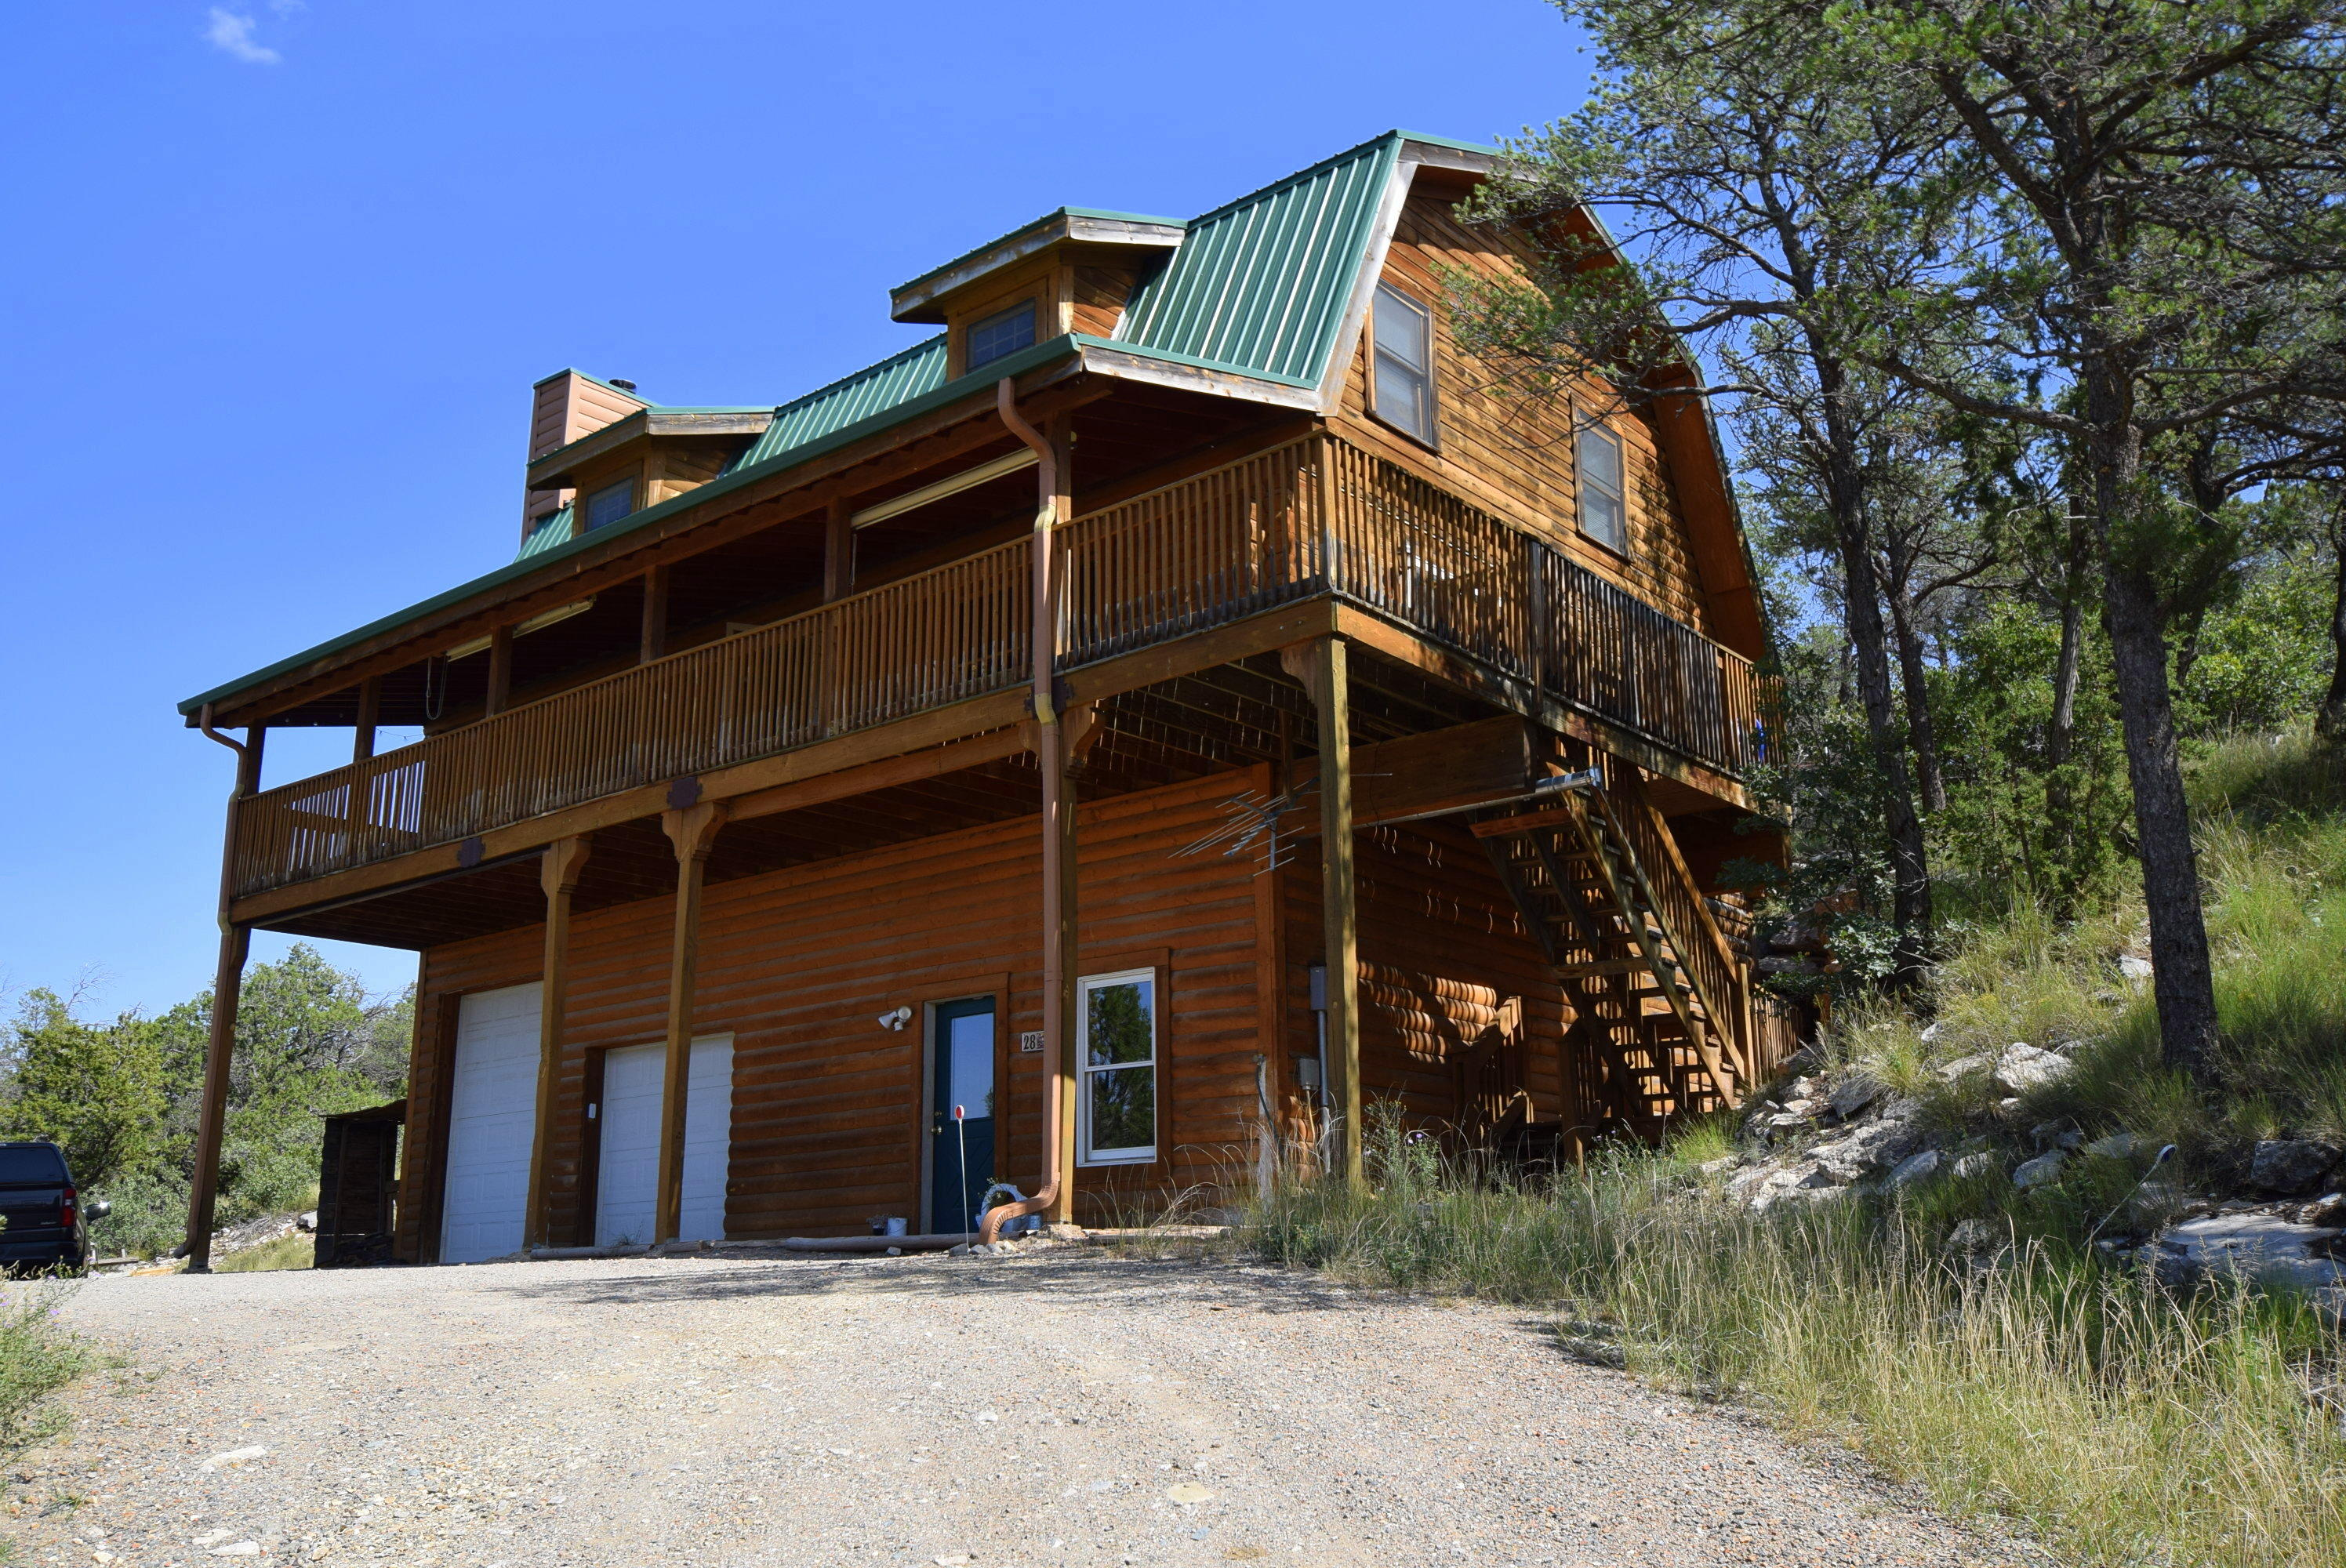 28 CAMINO ESTRIBOR Property Photo - Edgewood, NM real estate listing